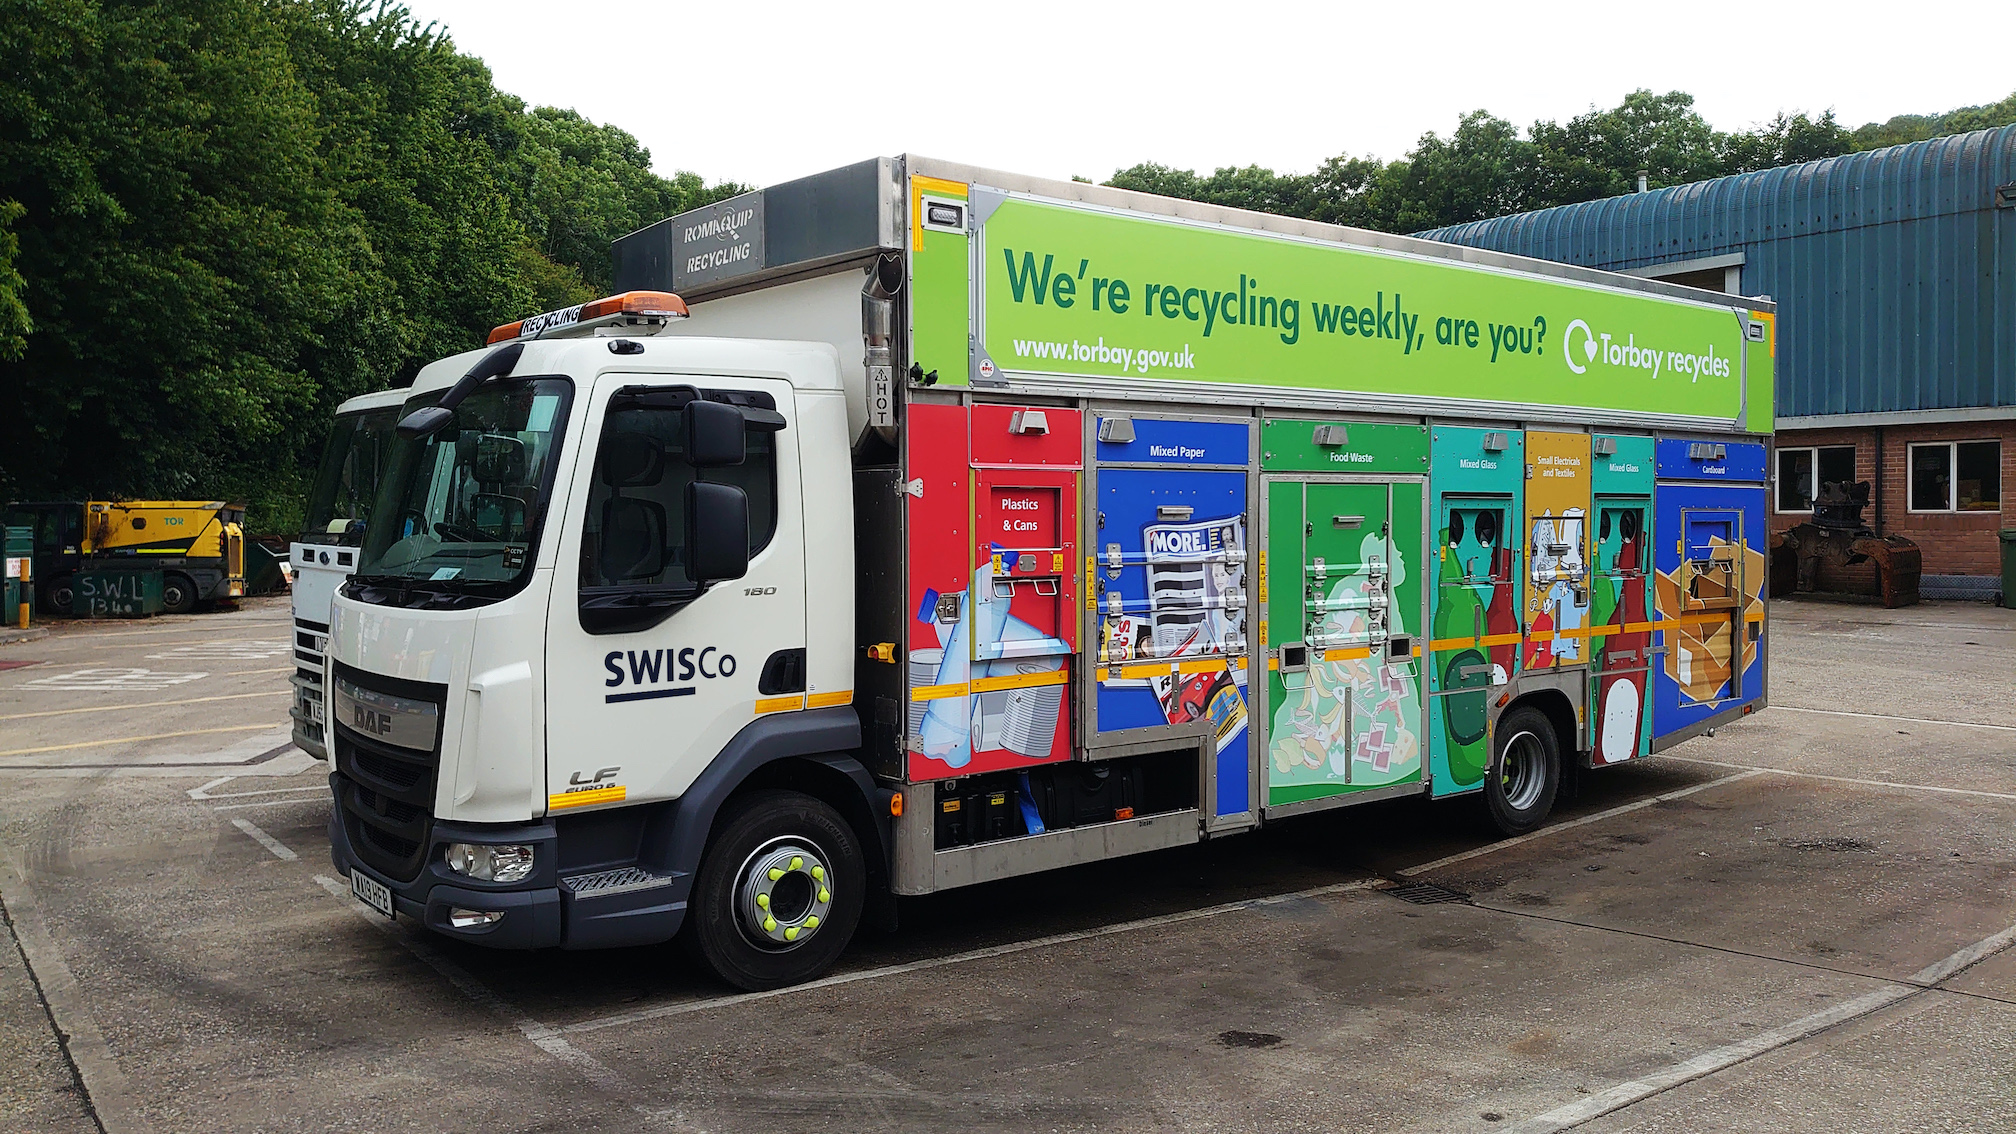 Torbay enhances waste and recycling fleet safety with LIVE camera systems